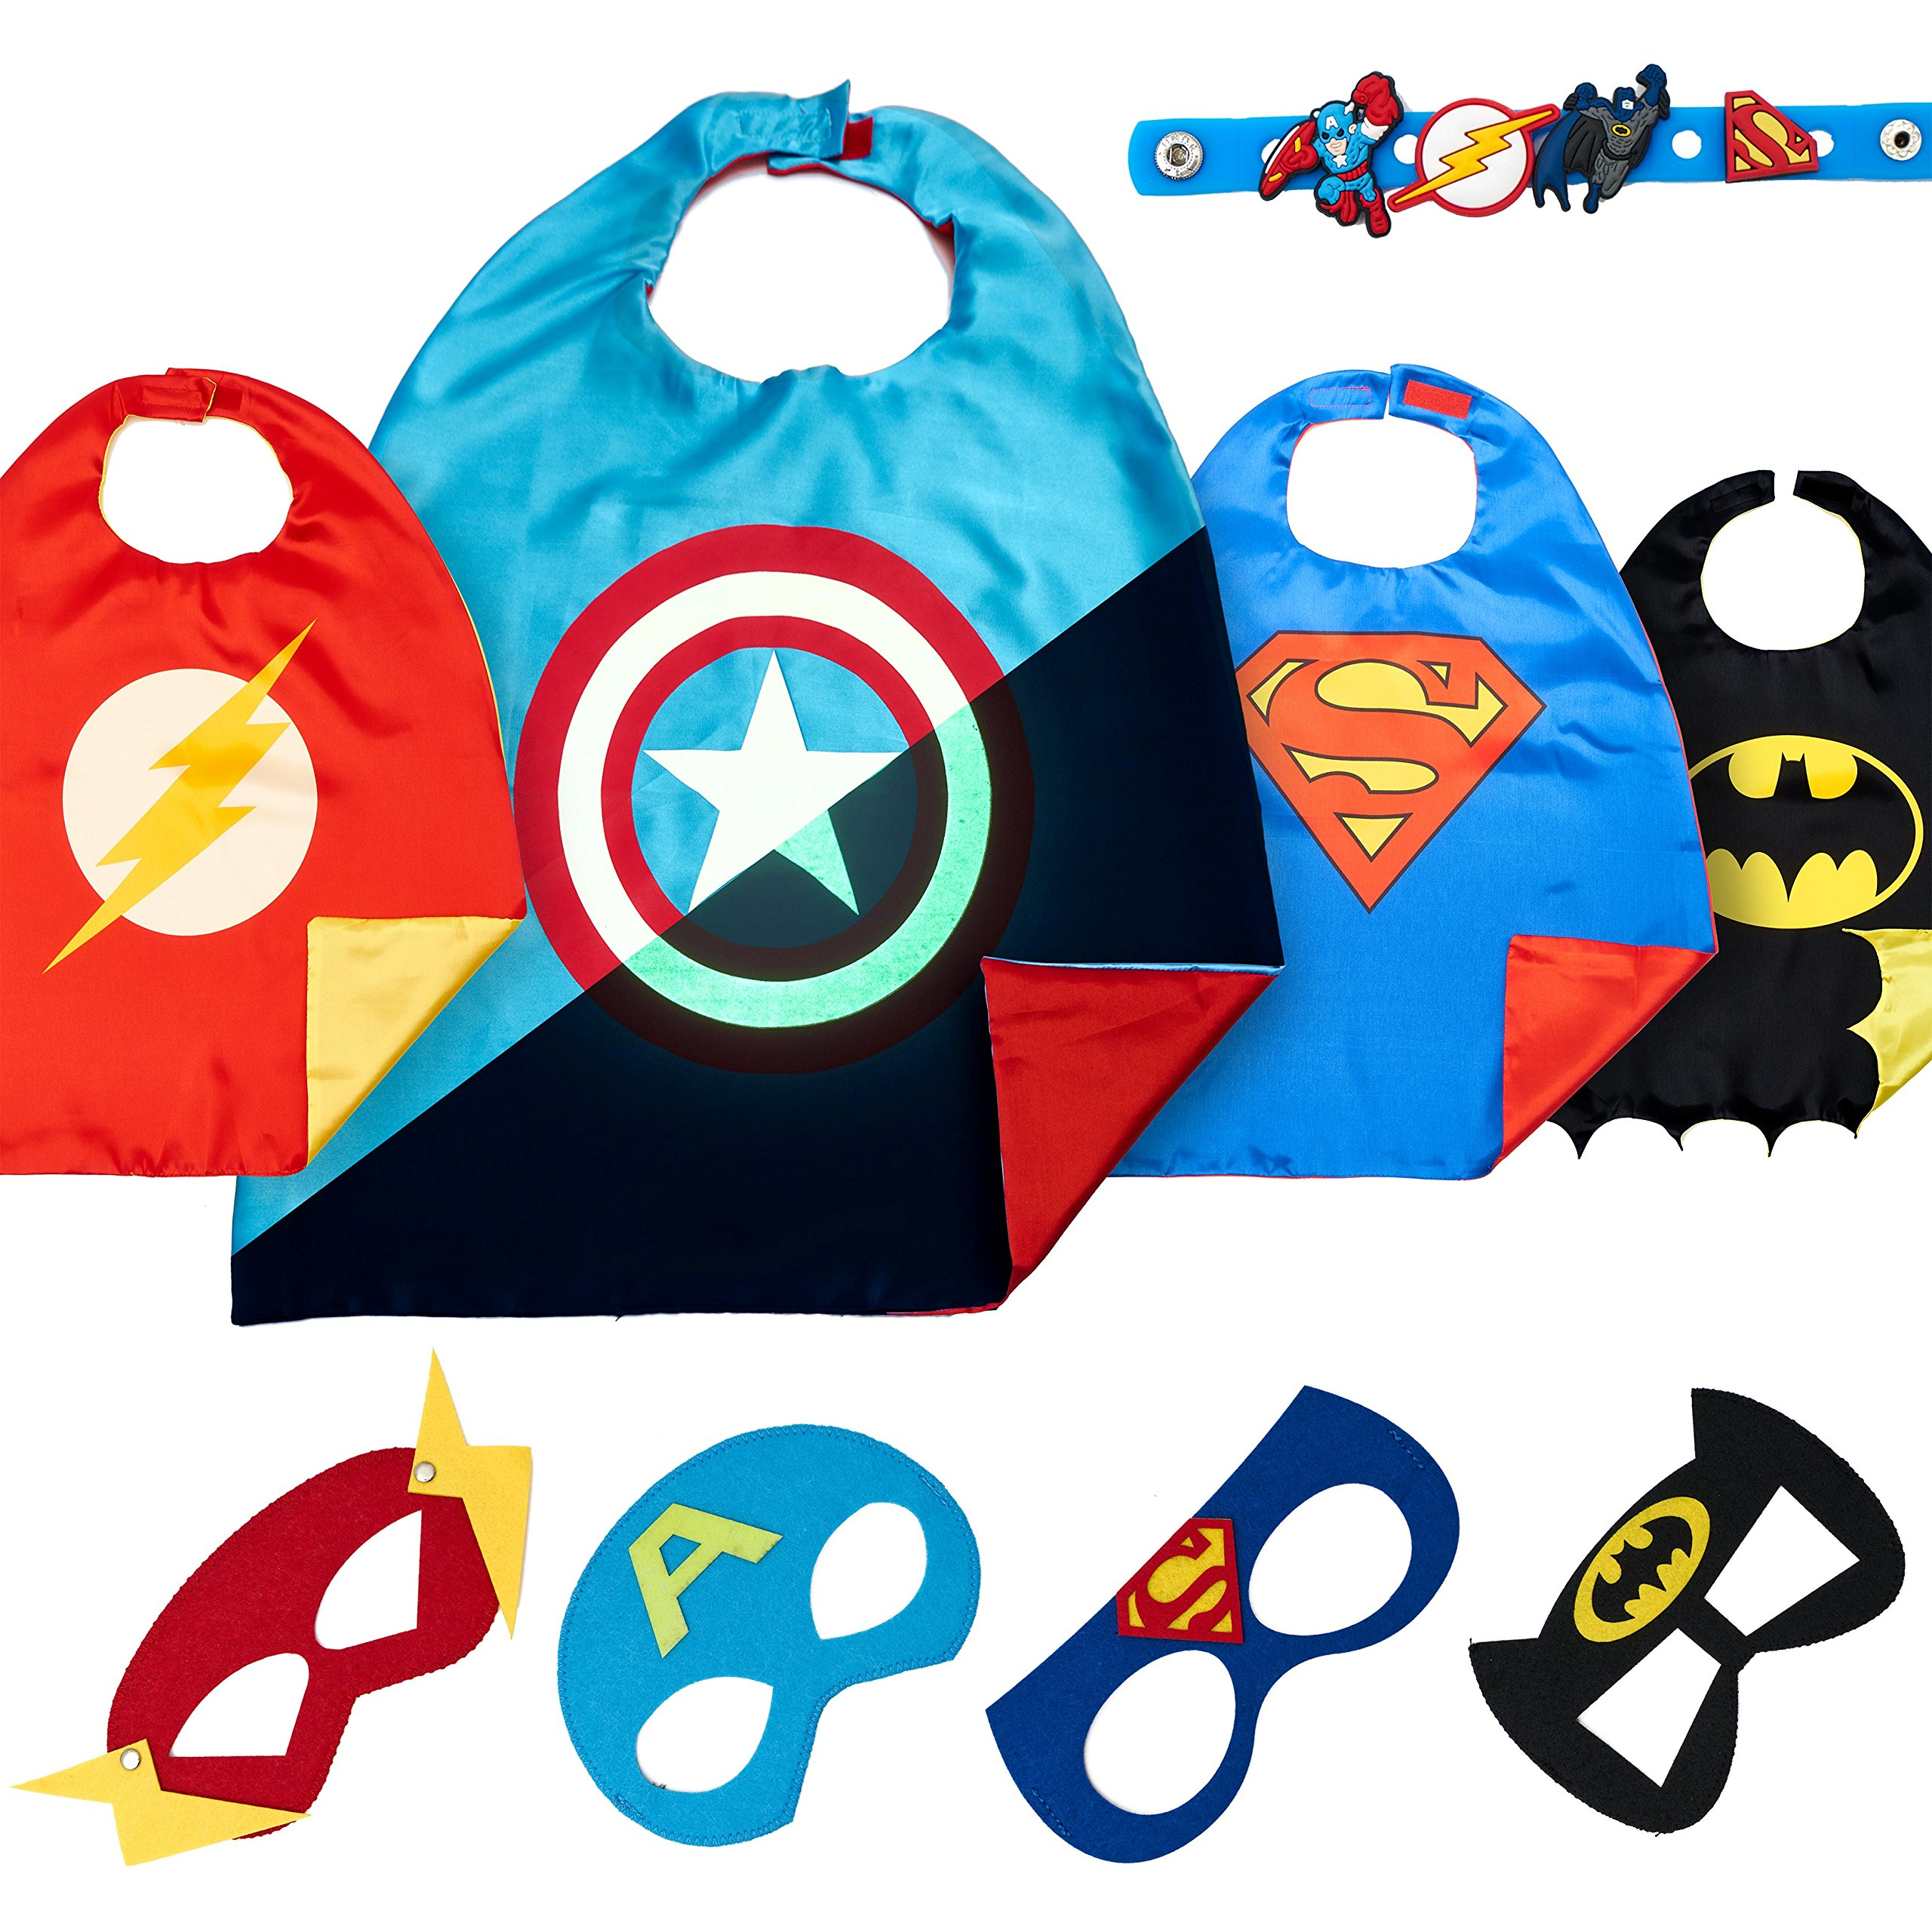 4 Superhero Capes for Kids - Super Hero Toys & Halloween Costumes - Birthday Party Supplies (Boys 1)